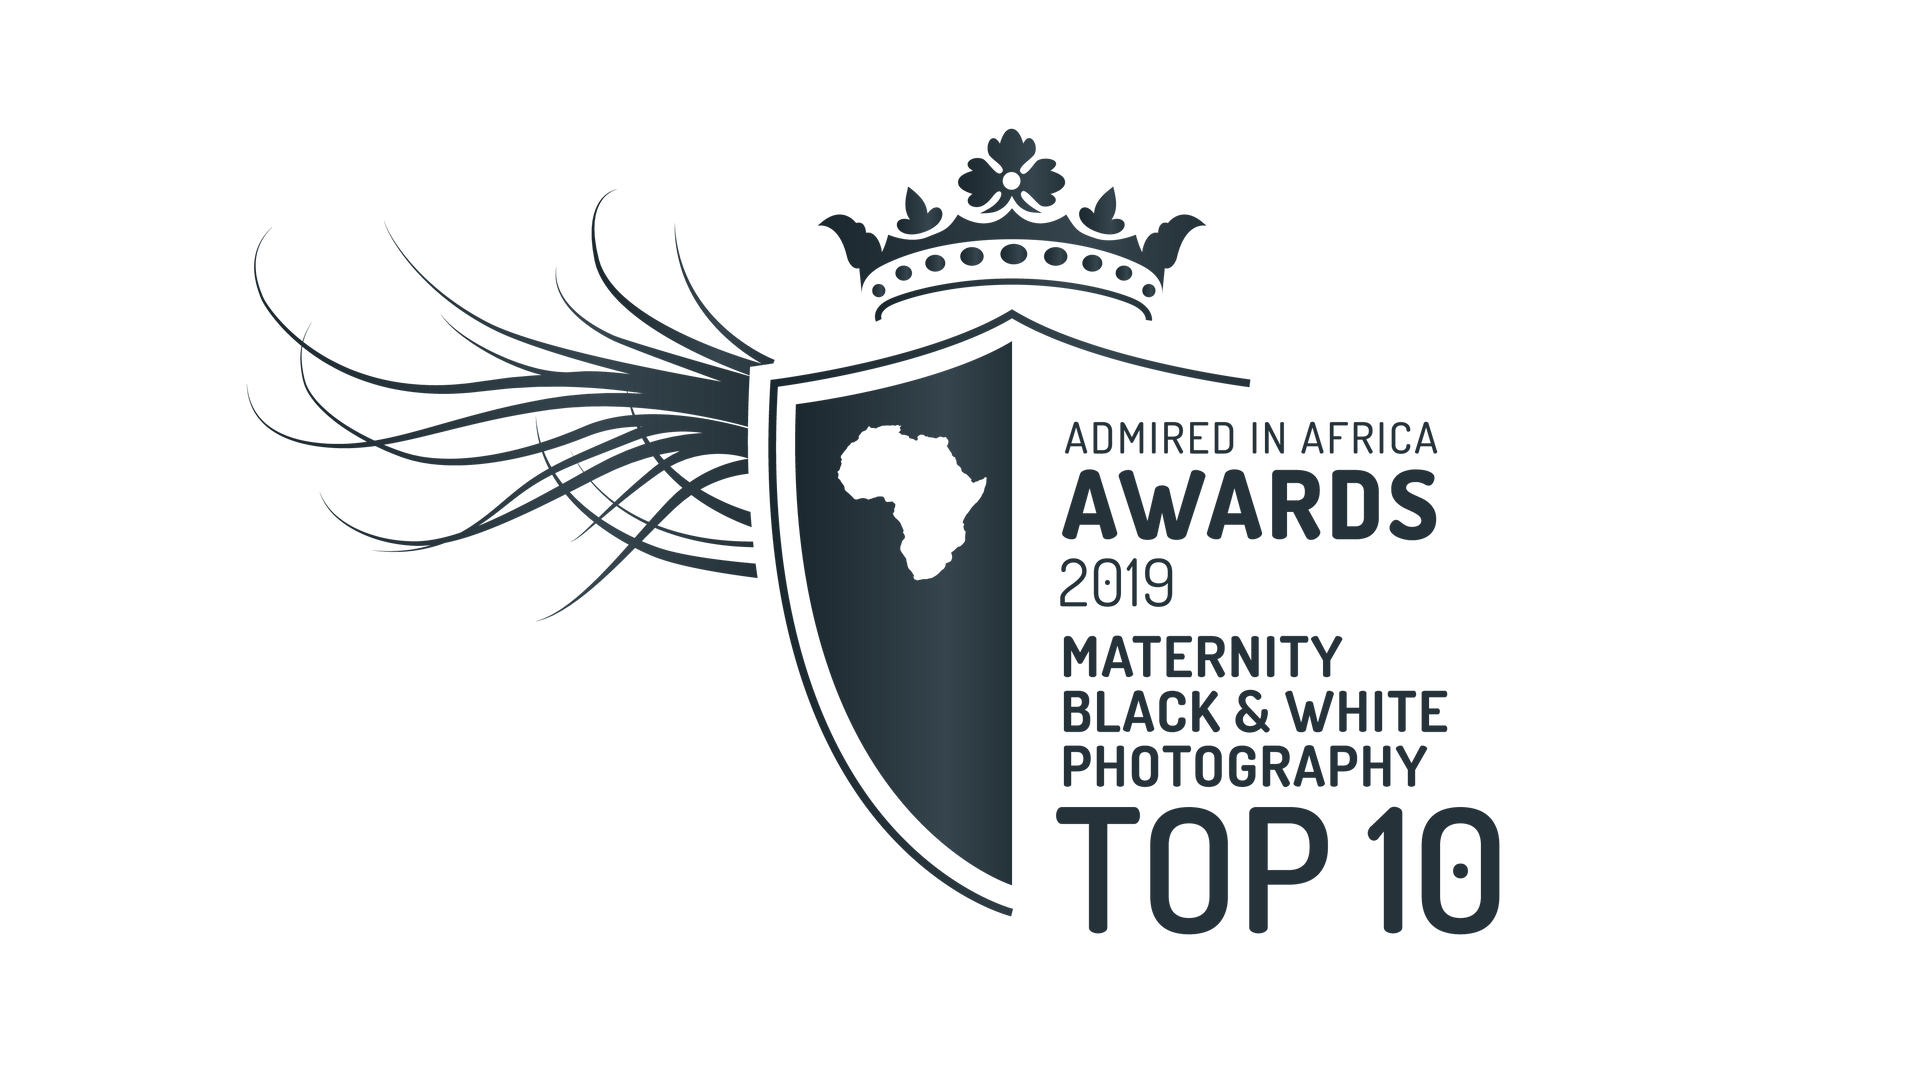 AIA19__Top 10 Maternity - 002 B&W.png